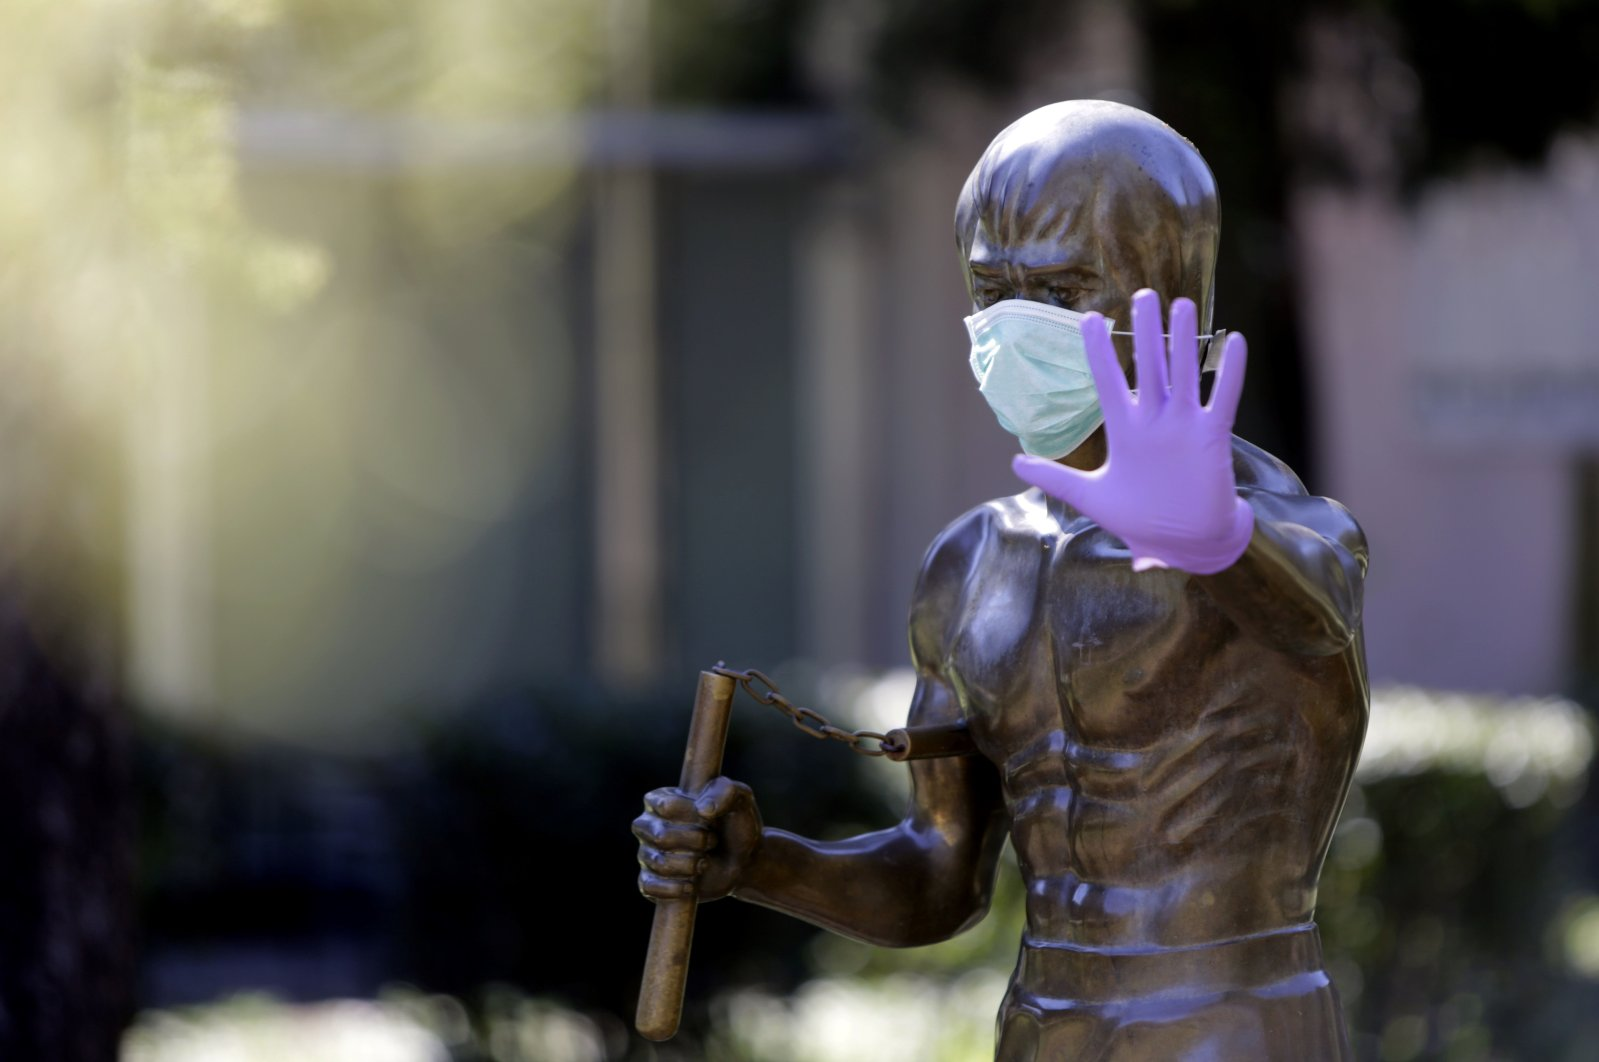 The statue dedicated to martial arts icon and actor Bruce Lee, wearing surgical gloves and a face mask, in the central park of Mostar, Bosnia-Herzegovina, April 2, 2020. (Photo by STR / AFP)